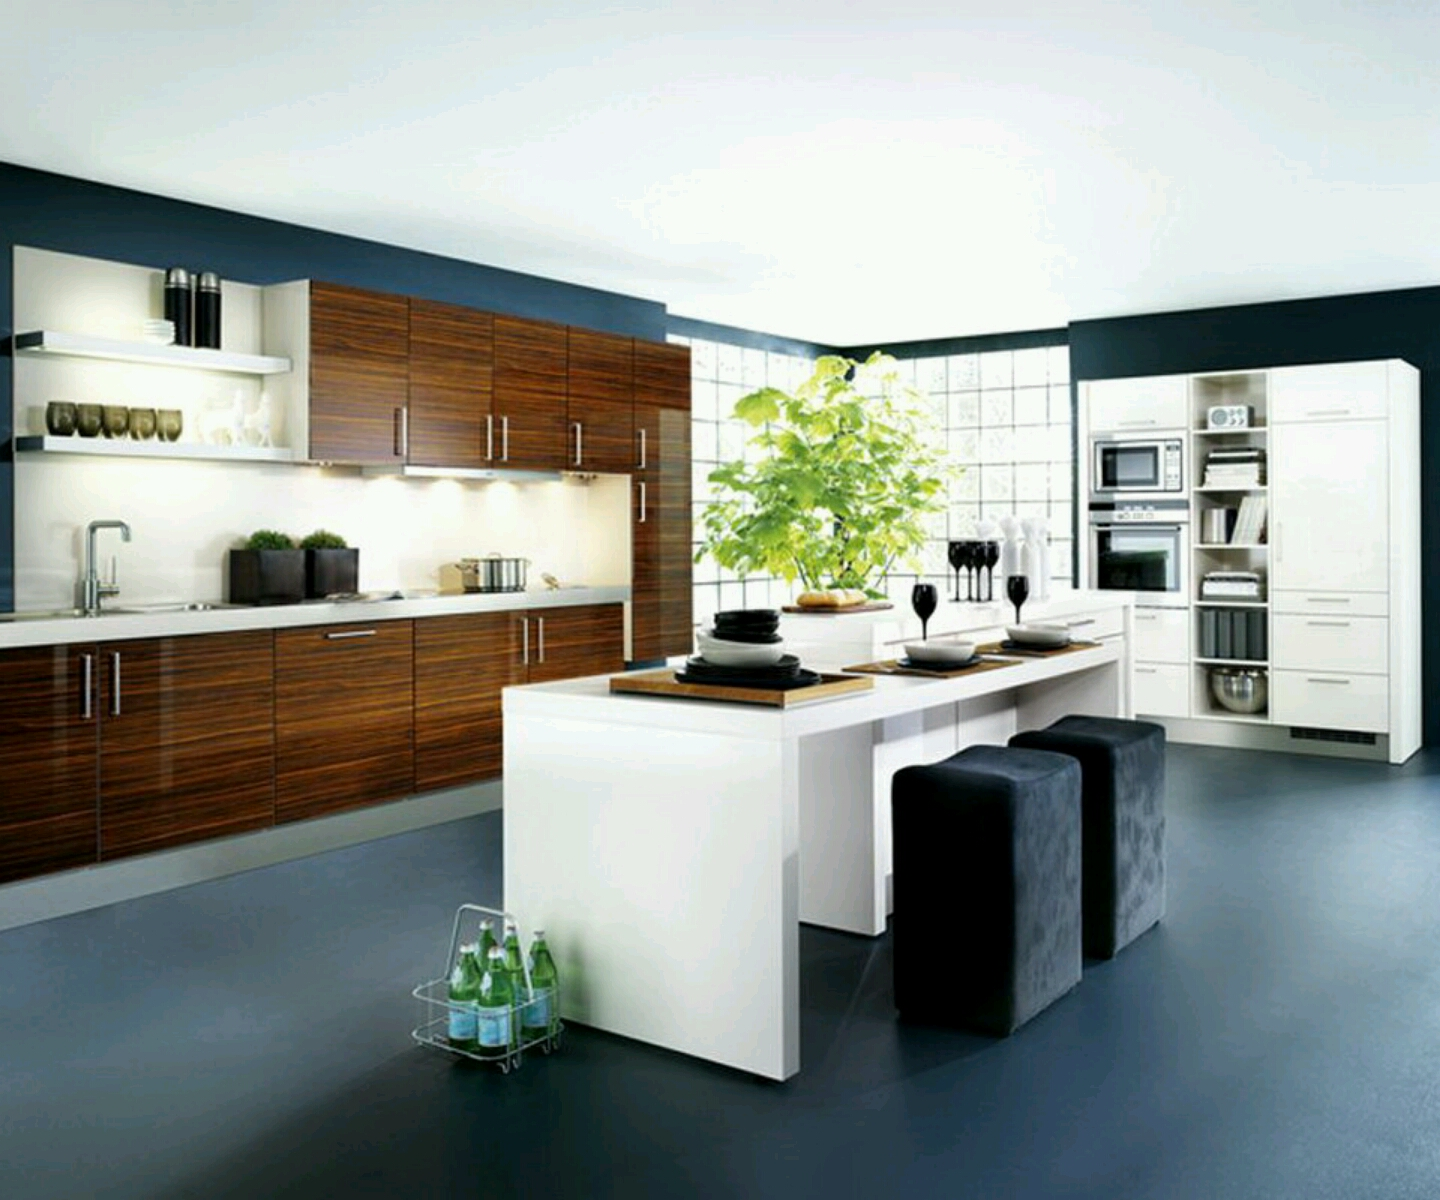 New home designs latest.: Kitchen cabinets designs modern ...